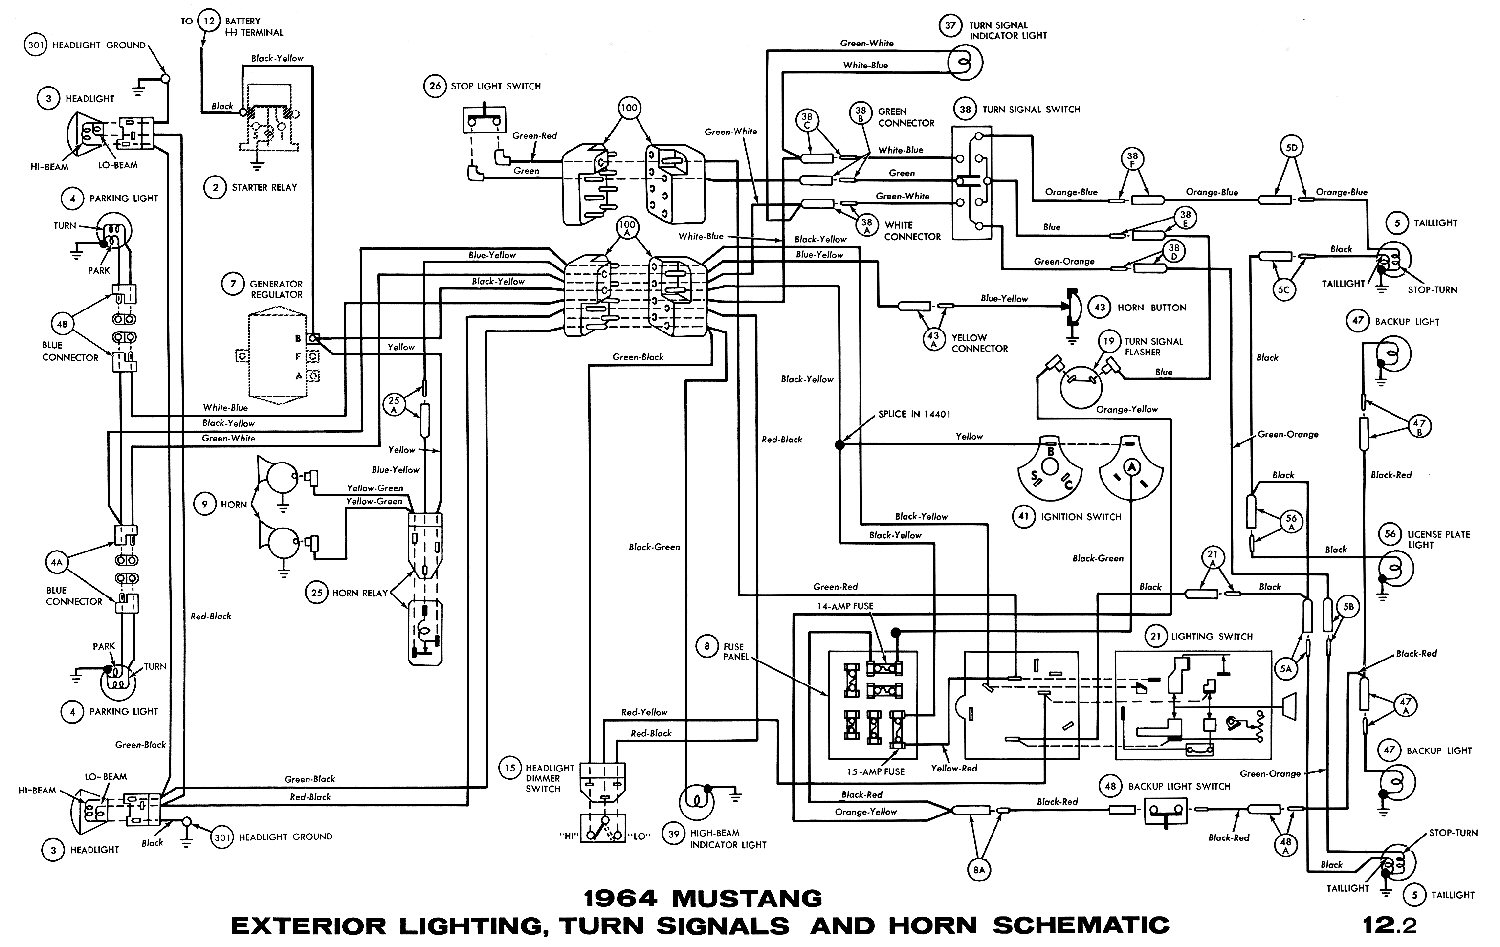 1964i 1964 mustang wiring diagrams average joe restoration 93 mustang turn signal wiring diagram at bakdesigns.co